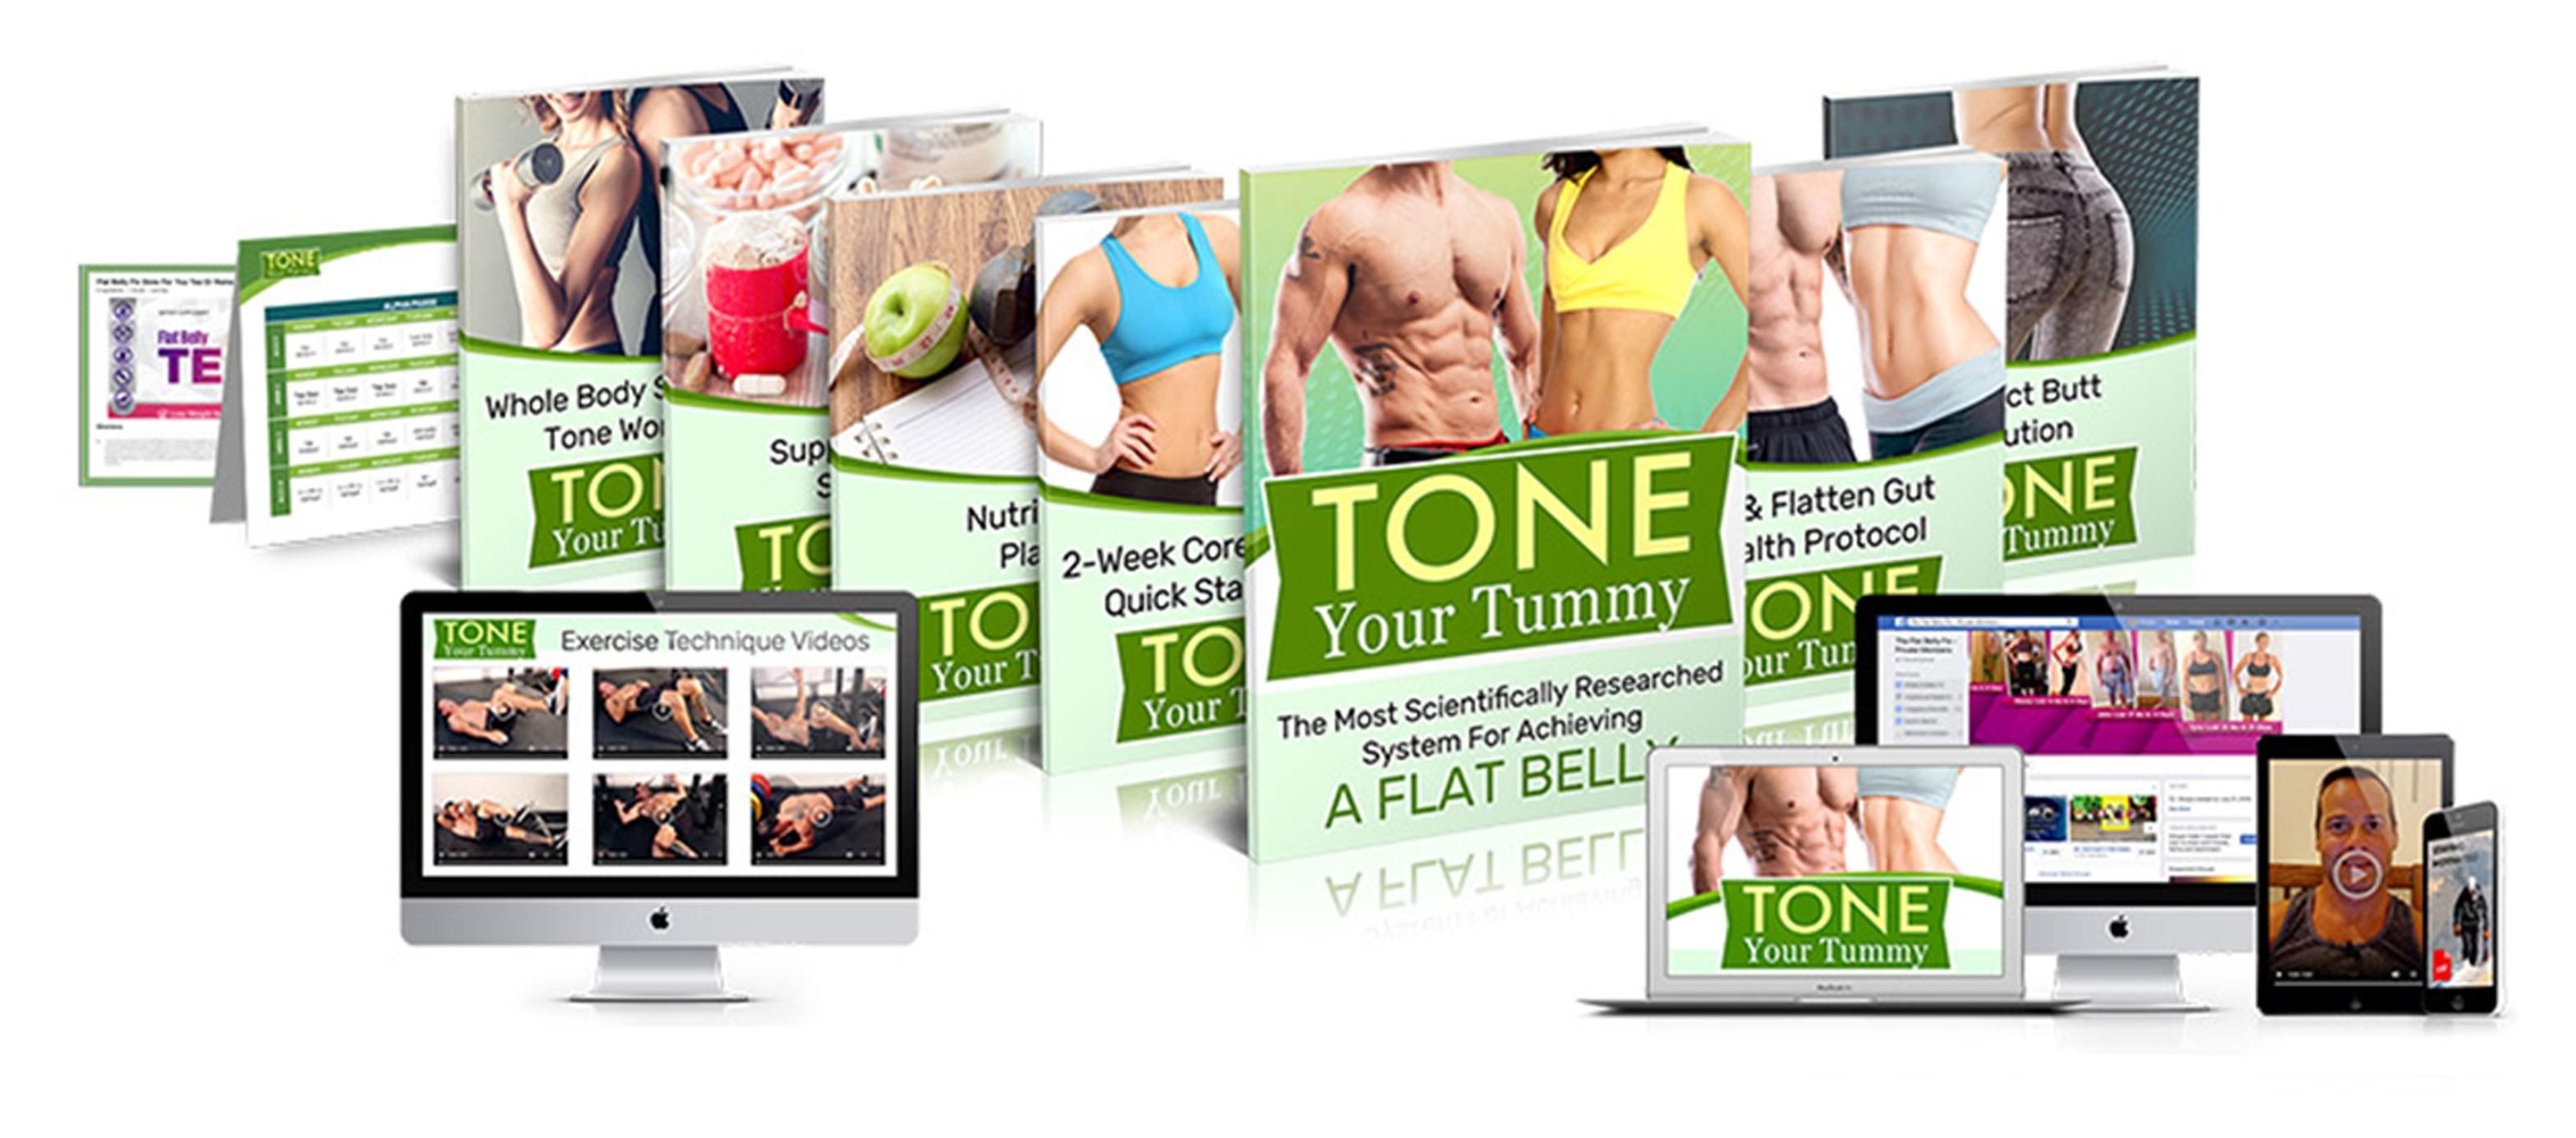 tone your tummy review- books